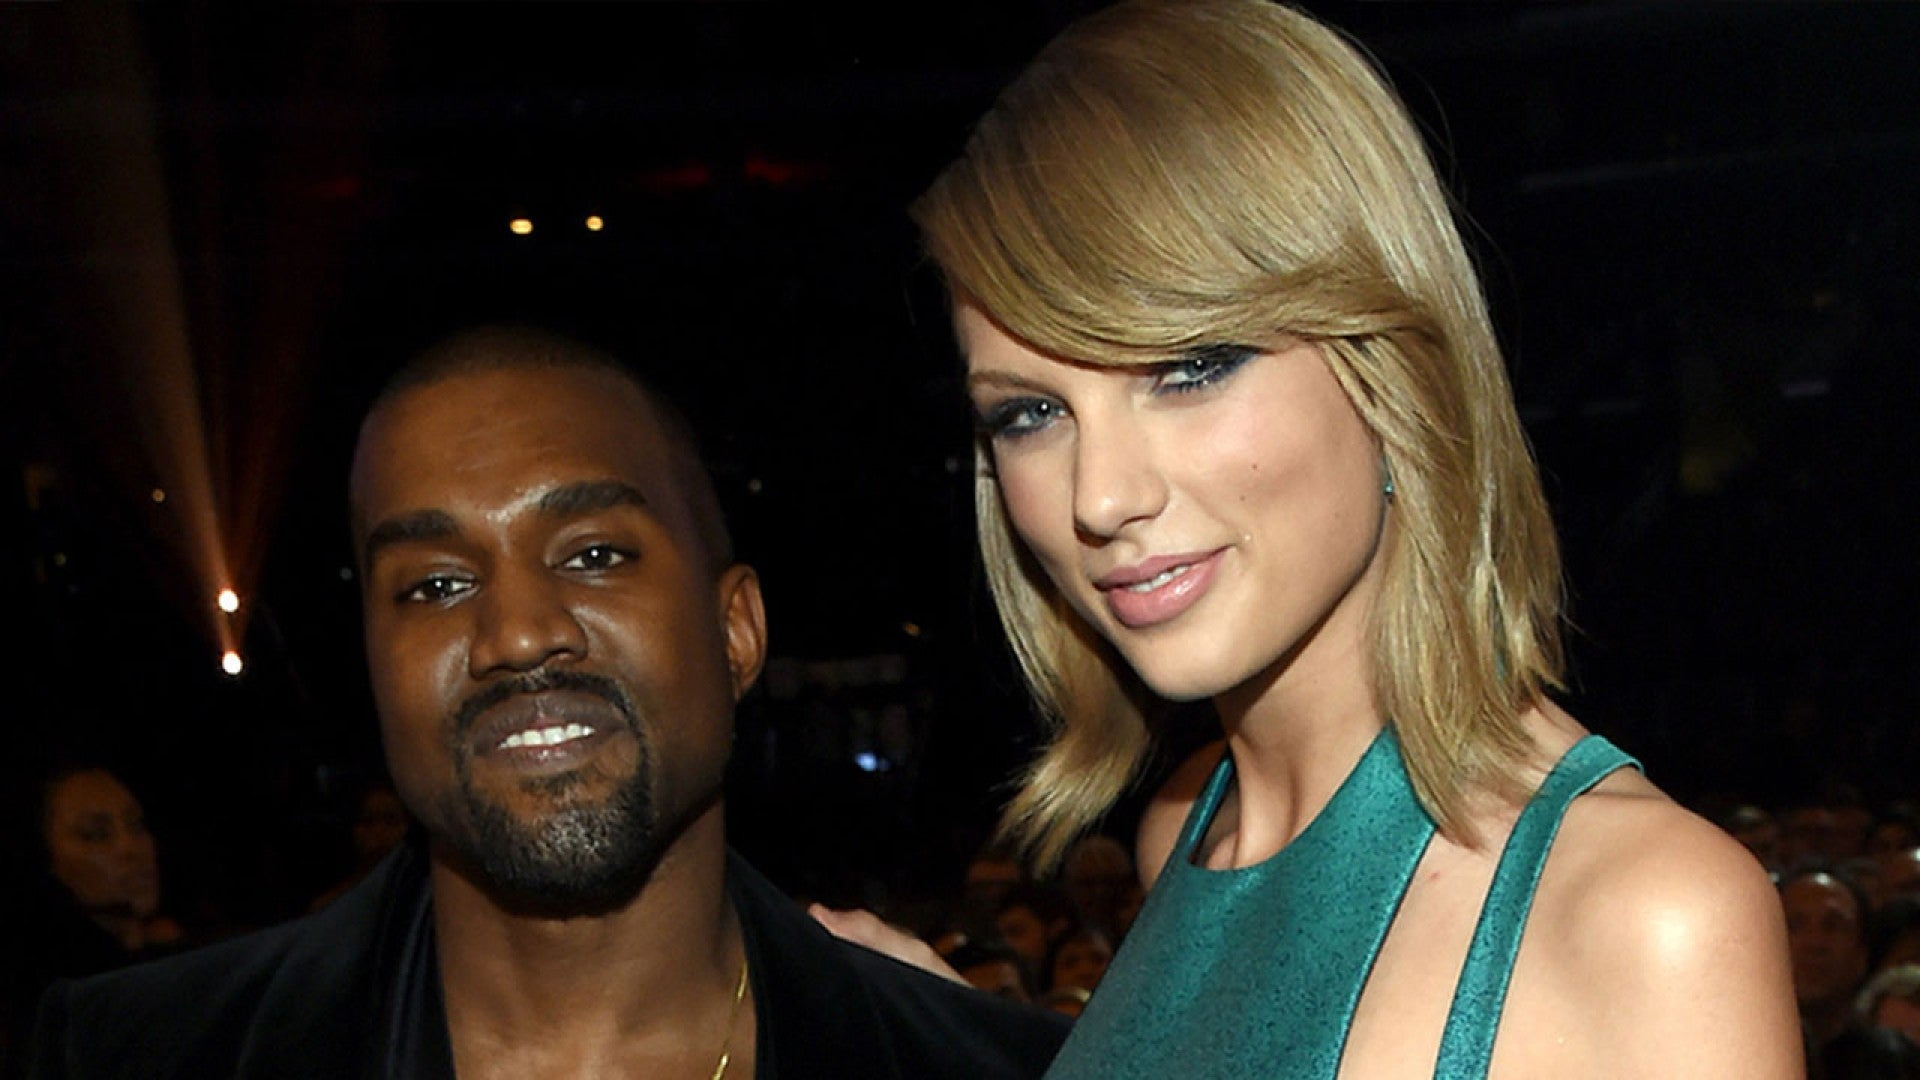 Taylor Swift Responds To Kim Kardashian Leaking Her Phone Call With Kanye West This Is Character Assassinati Entertainment Tonight